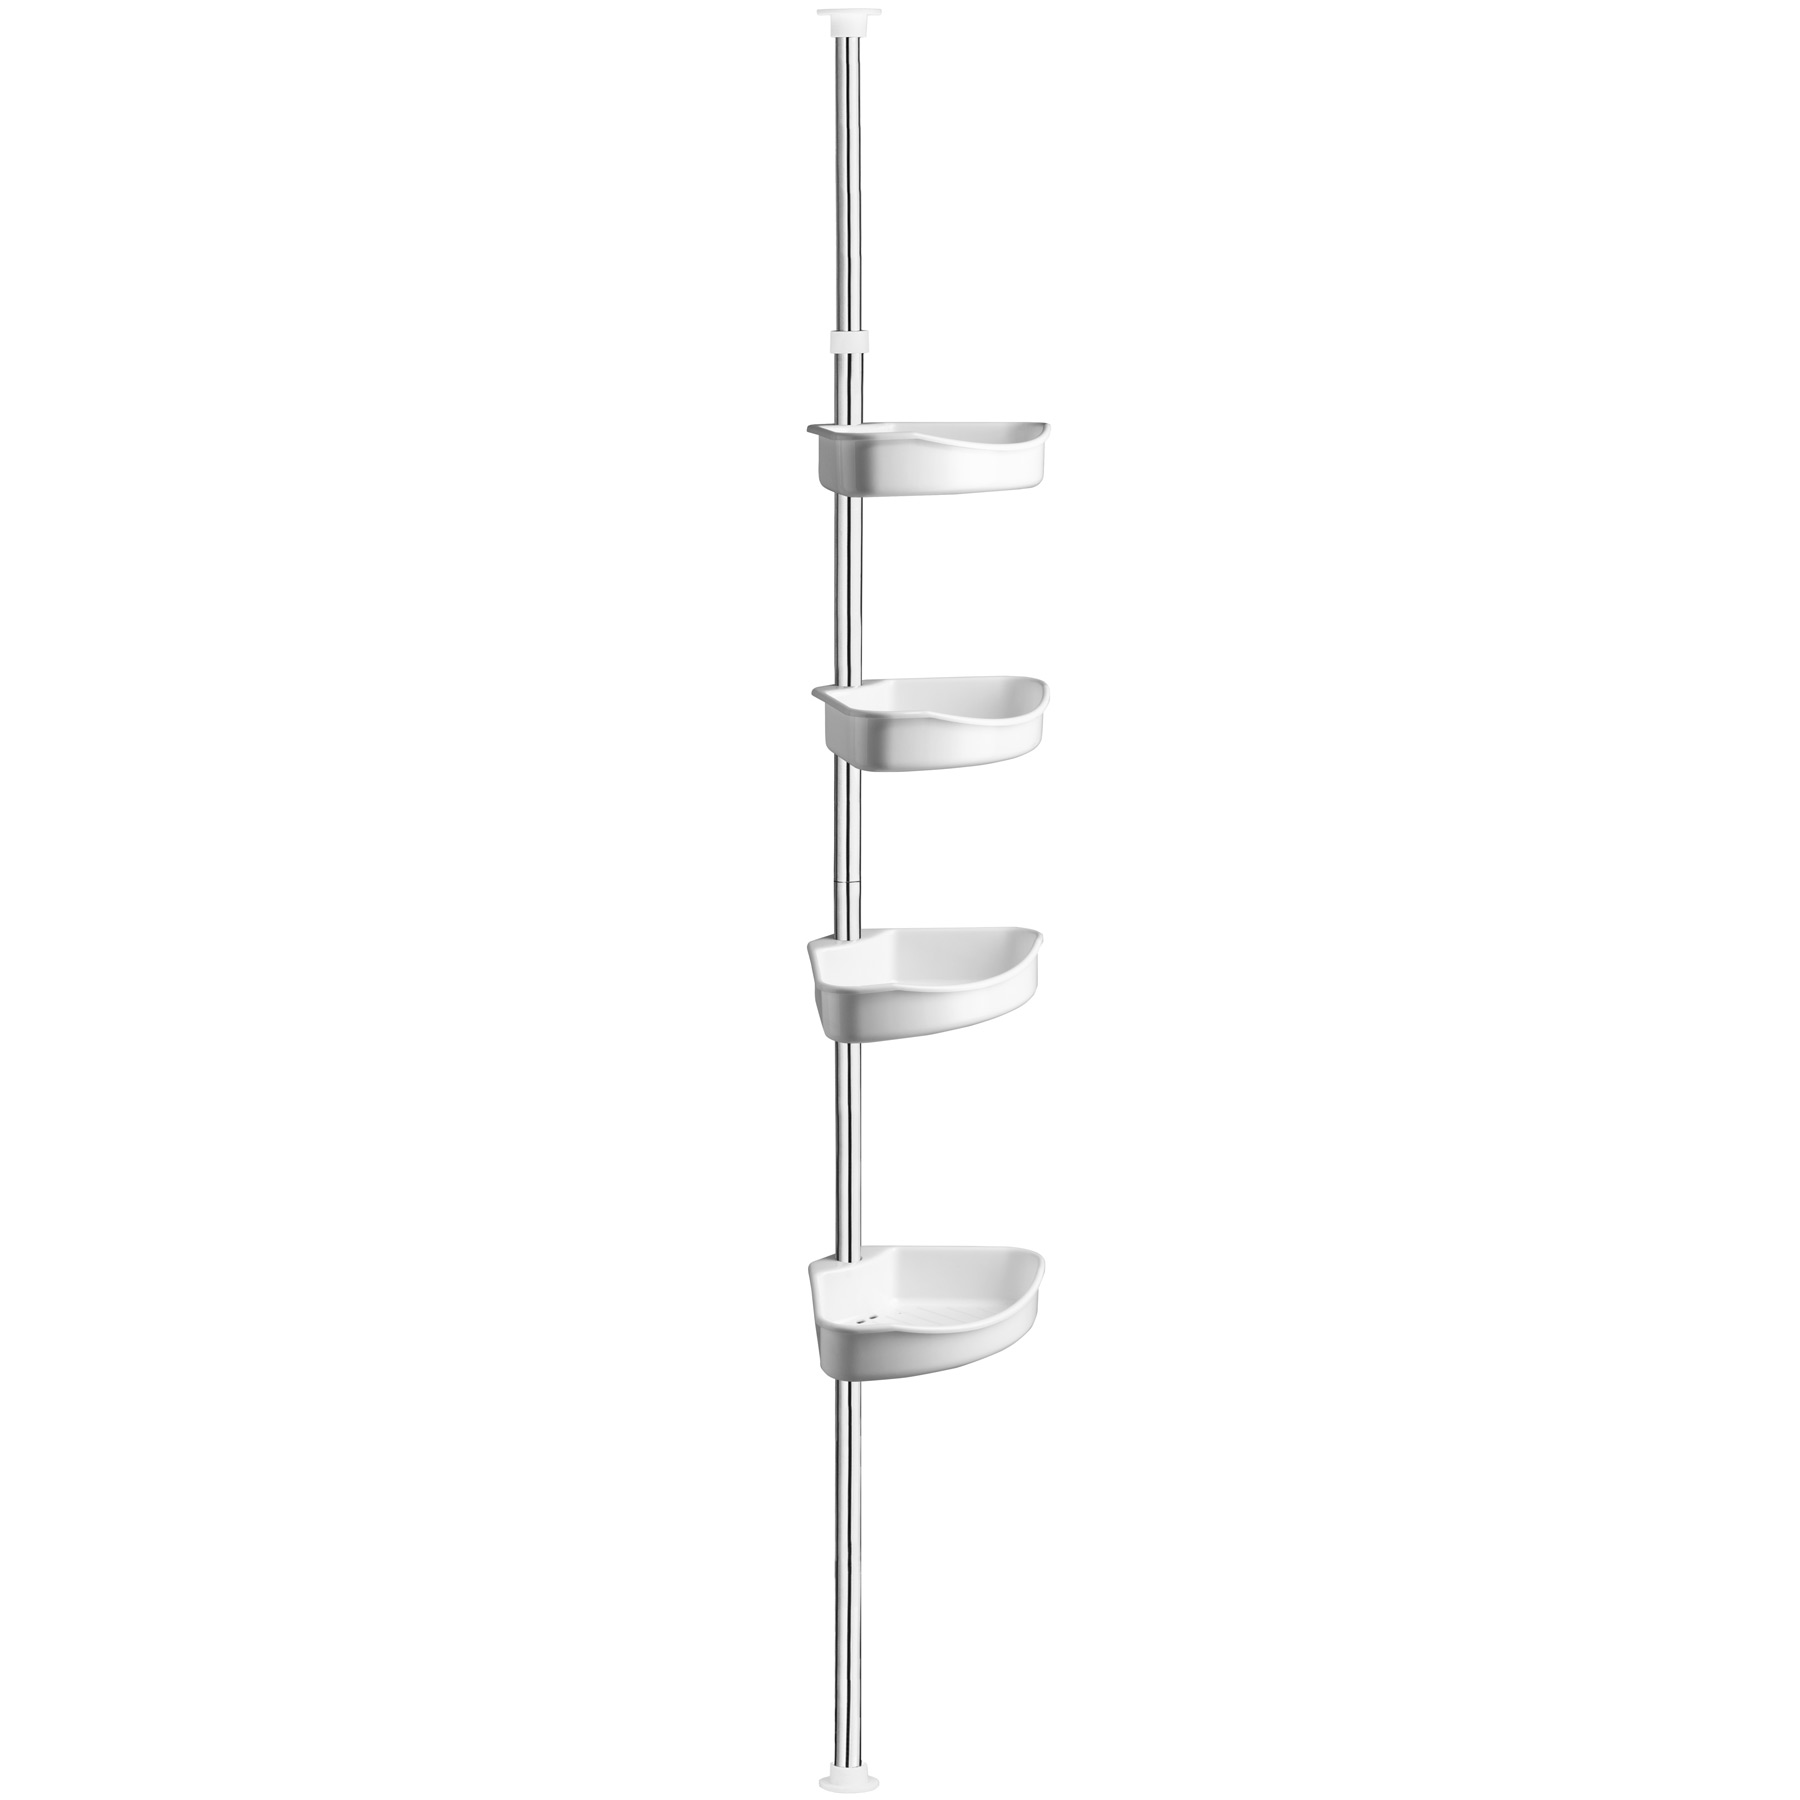 Telescopic shower shelf corner shelf stainless steel ebay for Accessoires salle de bain ikea